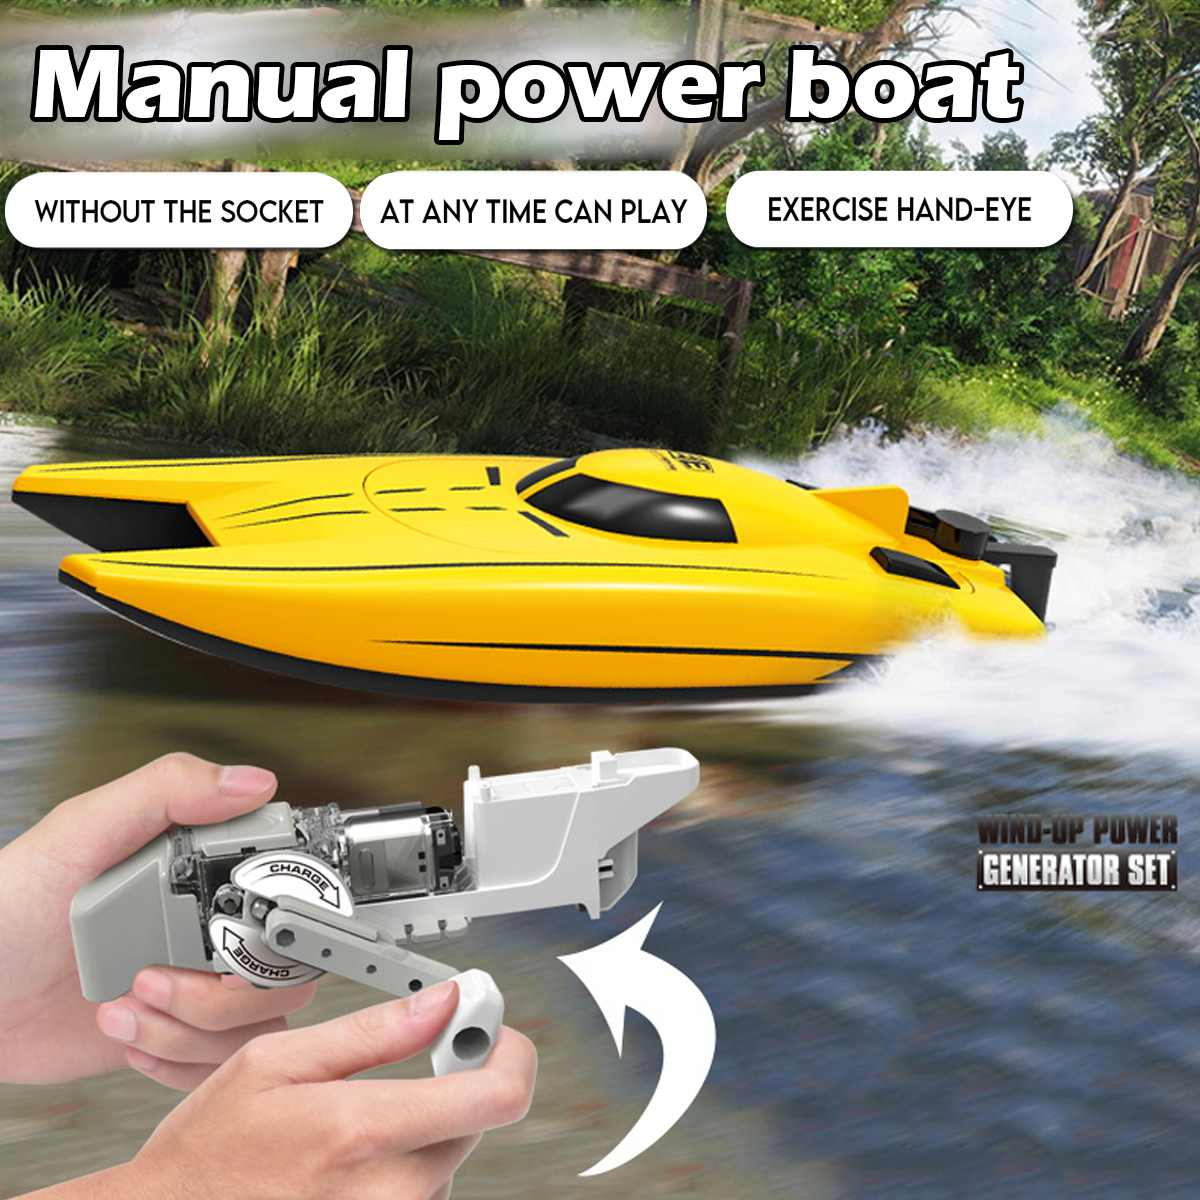 New Hand Crank Boat Car Hand Winch Power Generator Set Kids Car Toy Children Educational Play Toys Birthday Gifts For Kids